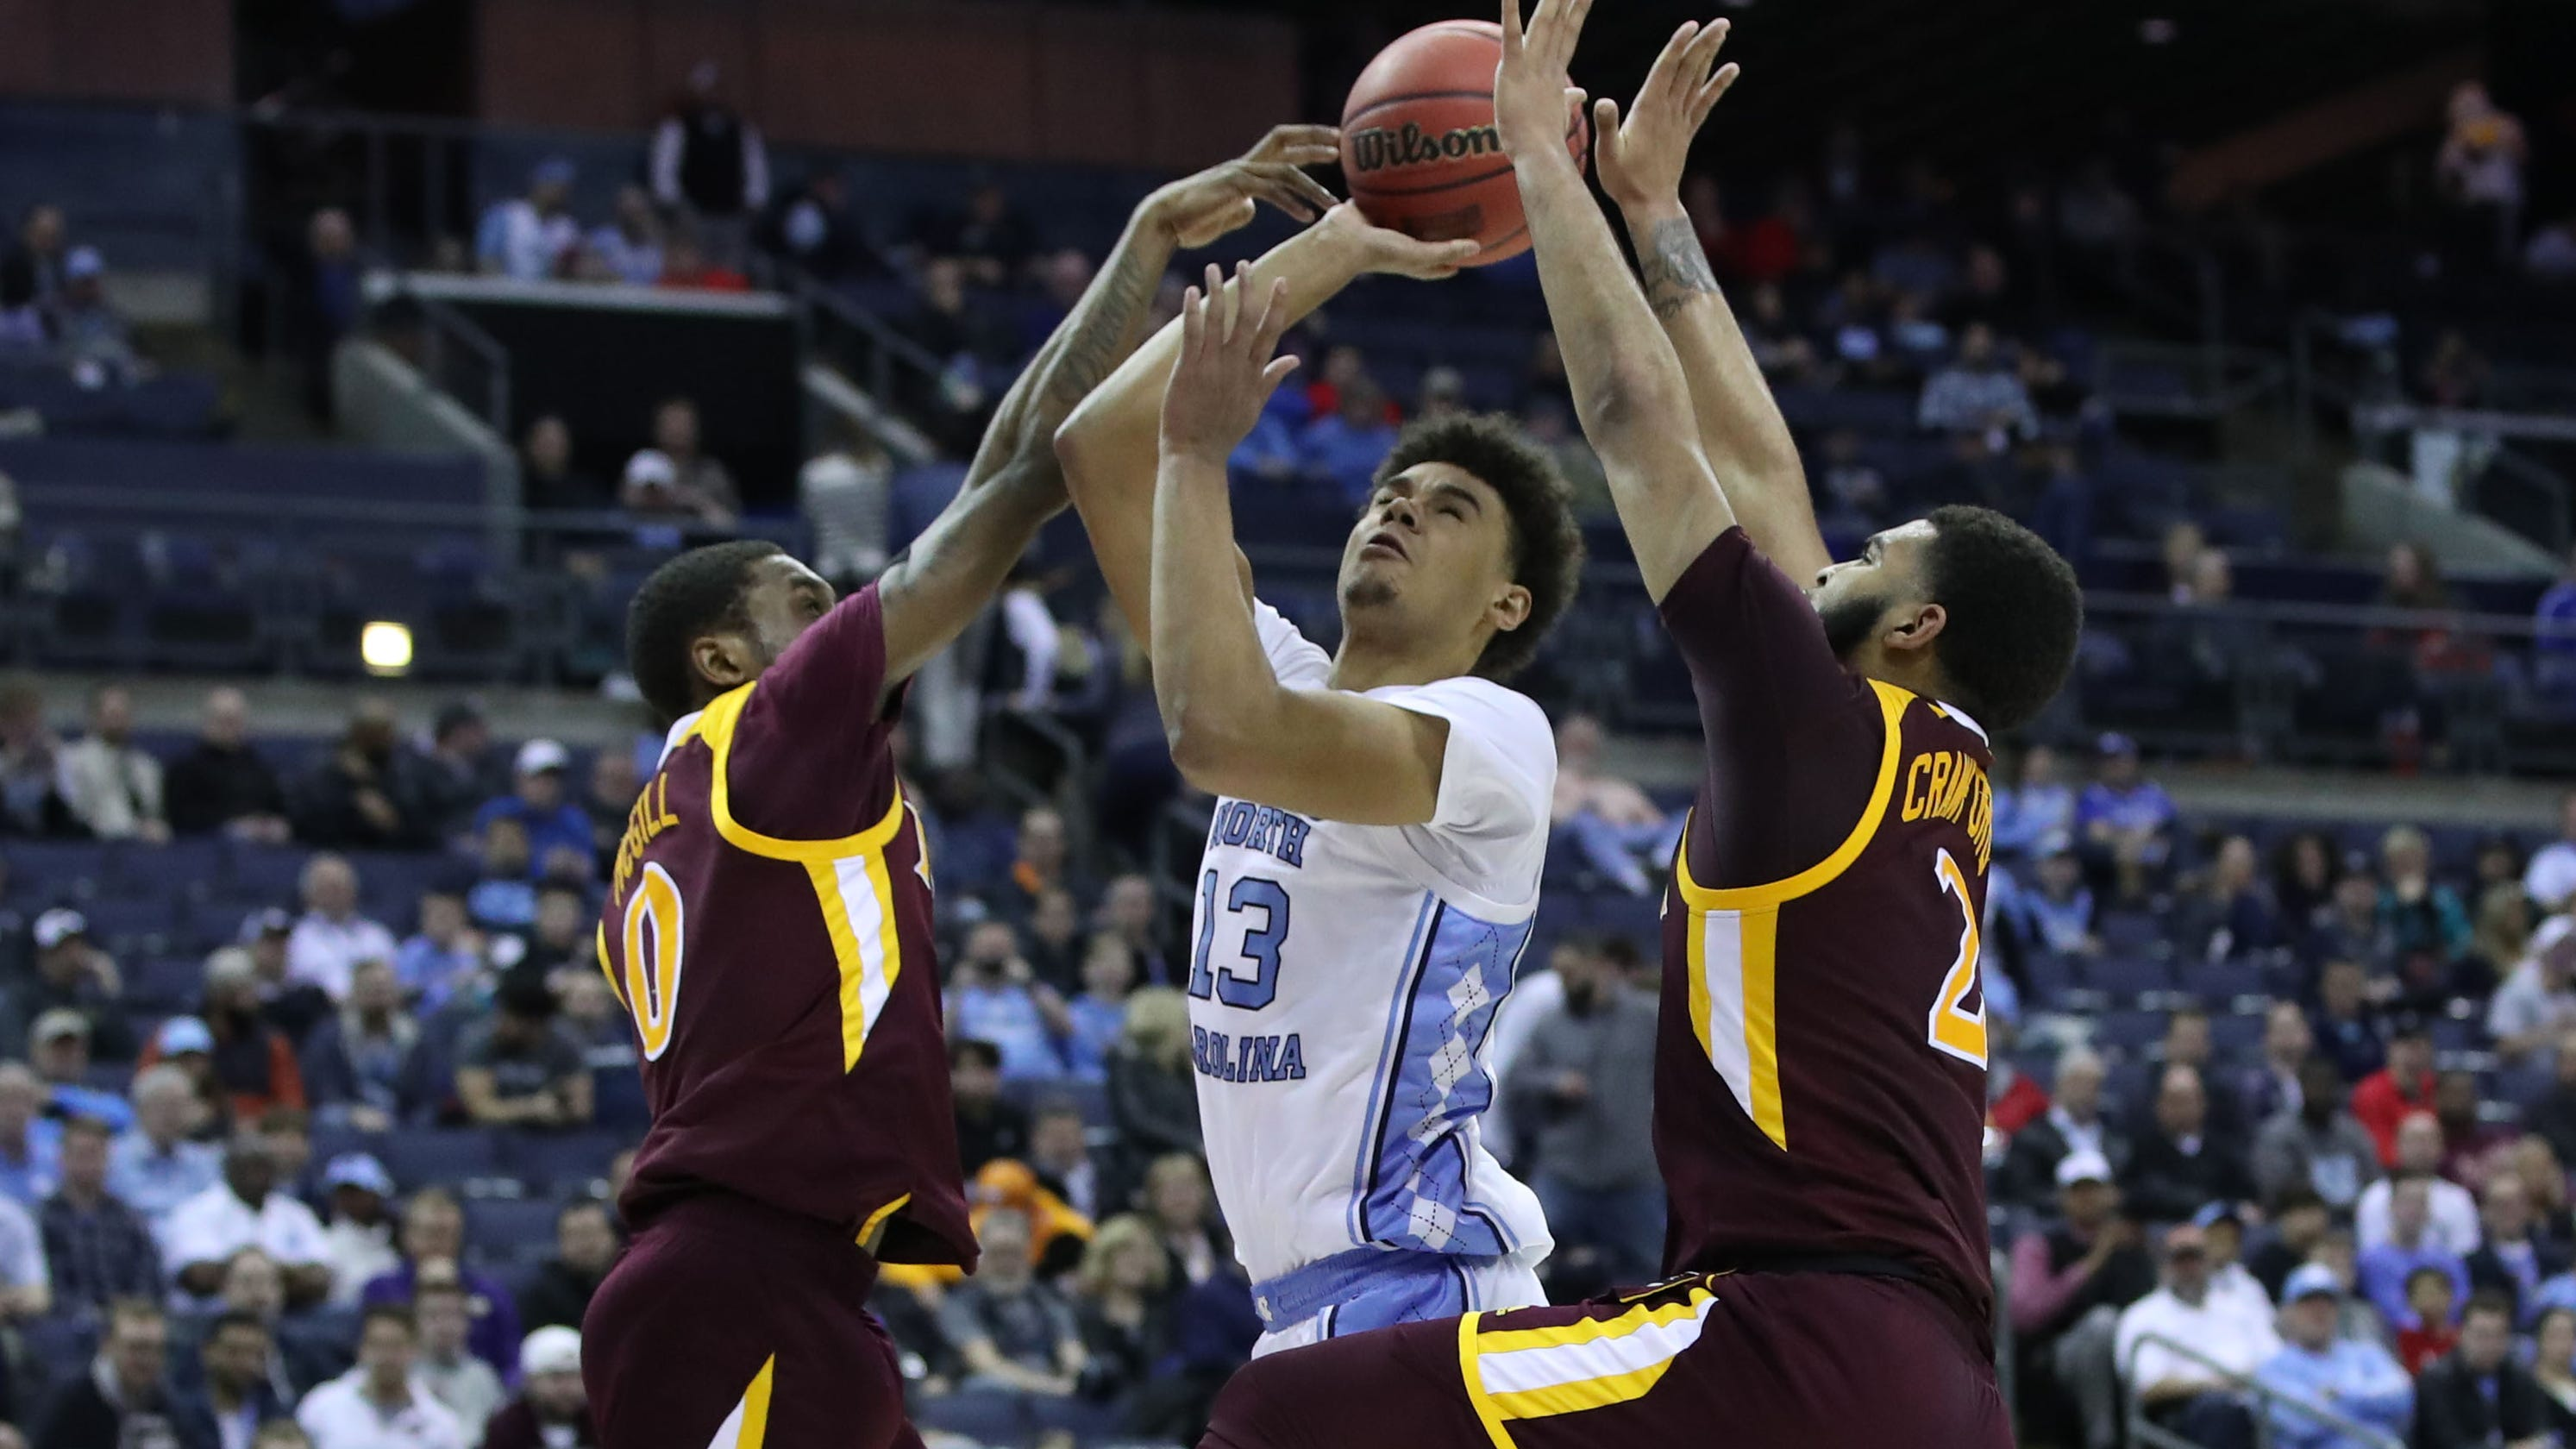 NCAA tournament: North Carolina shakes off slow start to roll past Iona